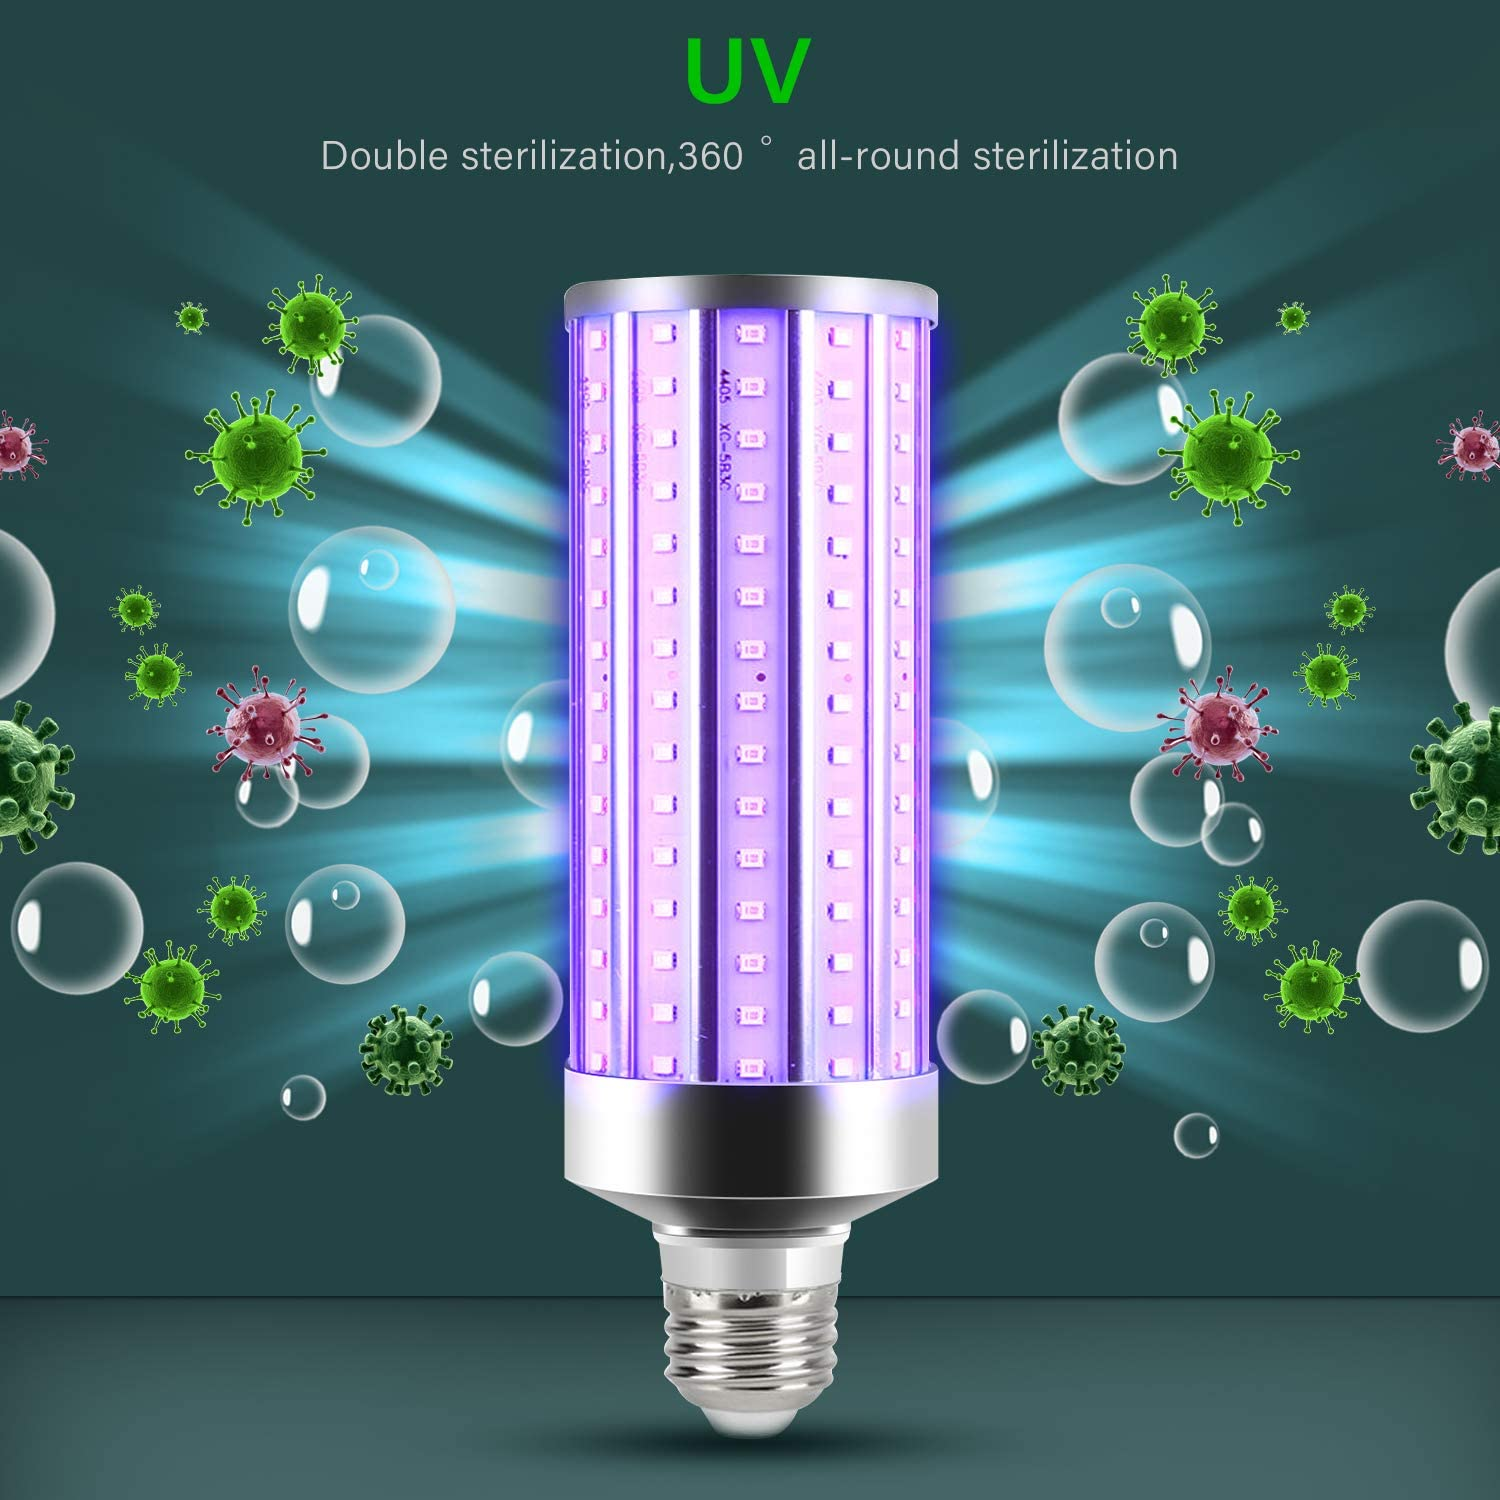 LECDDL The Latest 110V 50W E26 E27 Ultraviolet germicidal lamp Household Disinfection lamp with Remote Control Timer Ultraviolet germicidal lamp